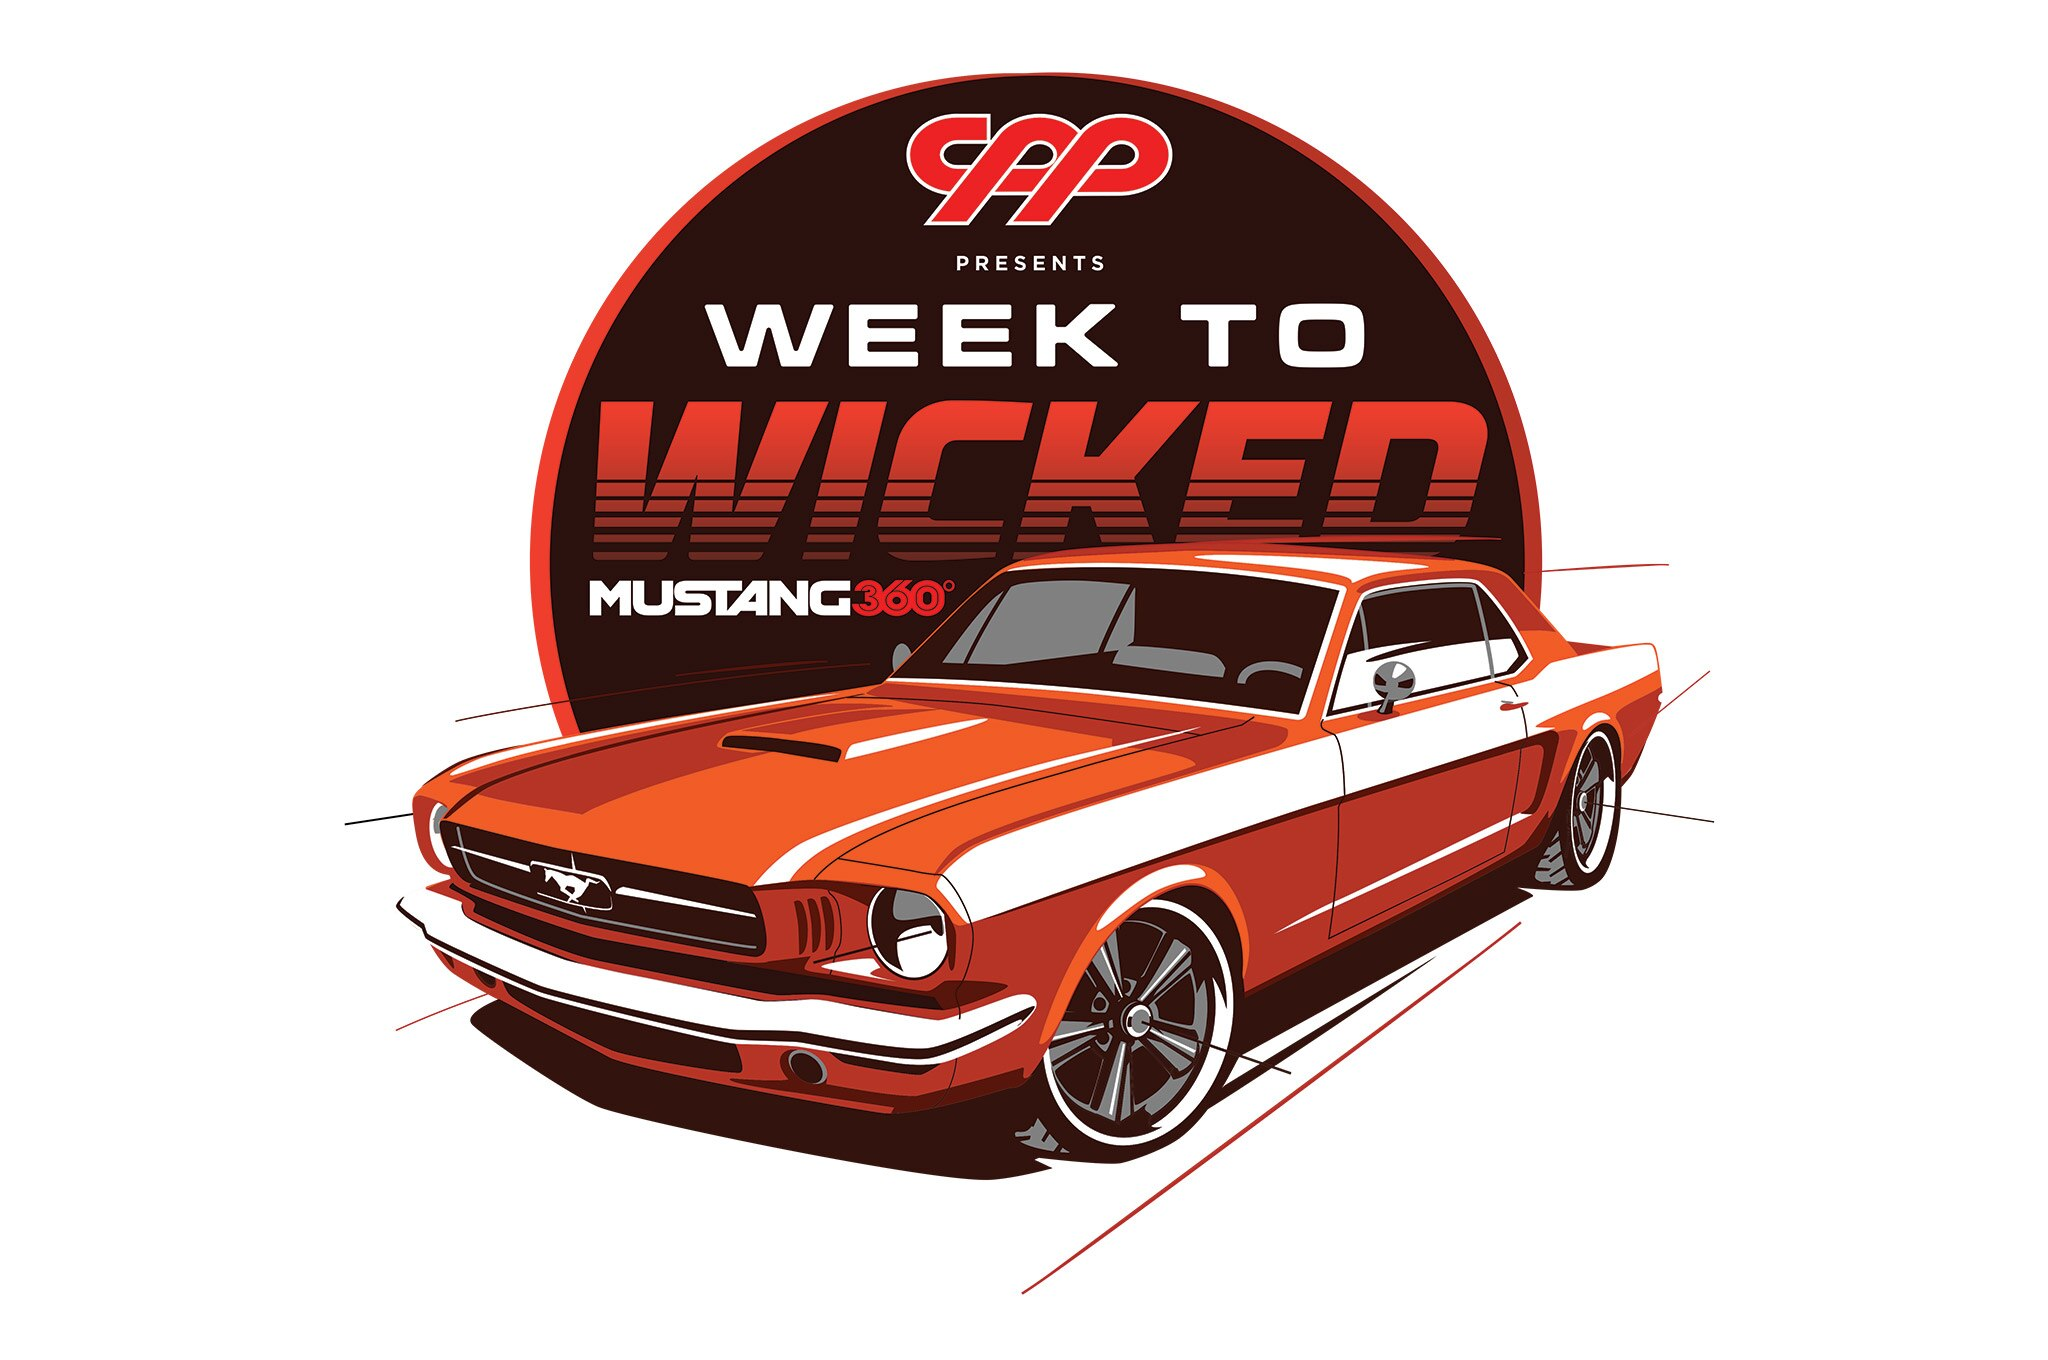 1966 Mustang Restomod Week To Wicked Logo